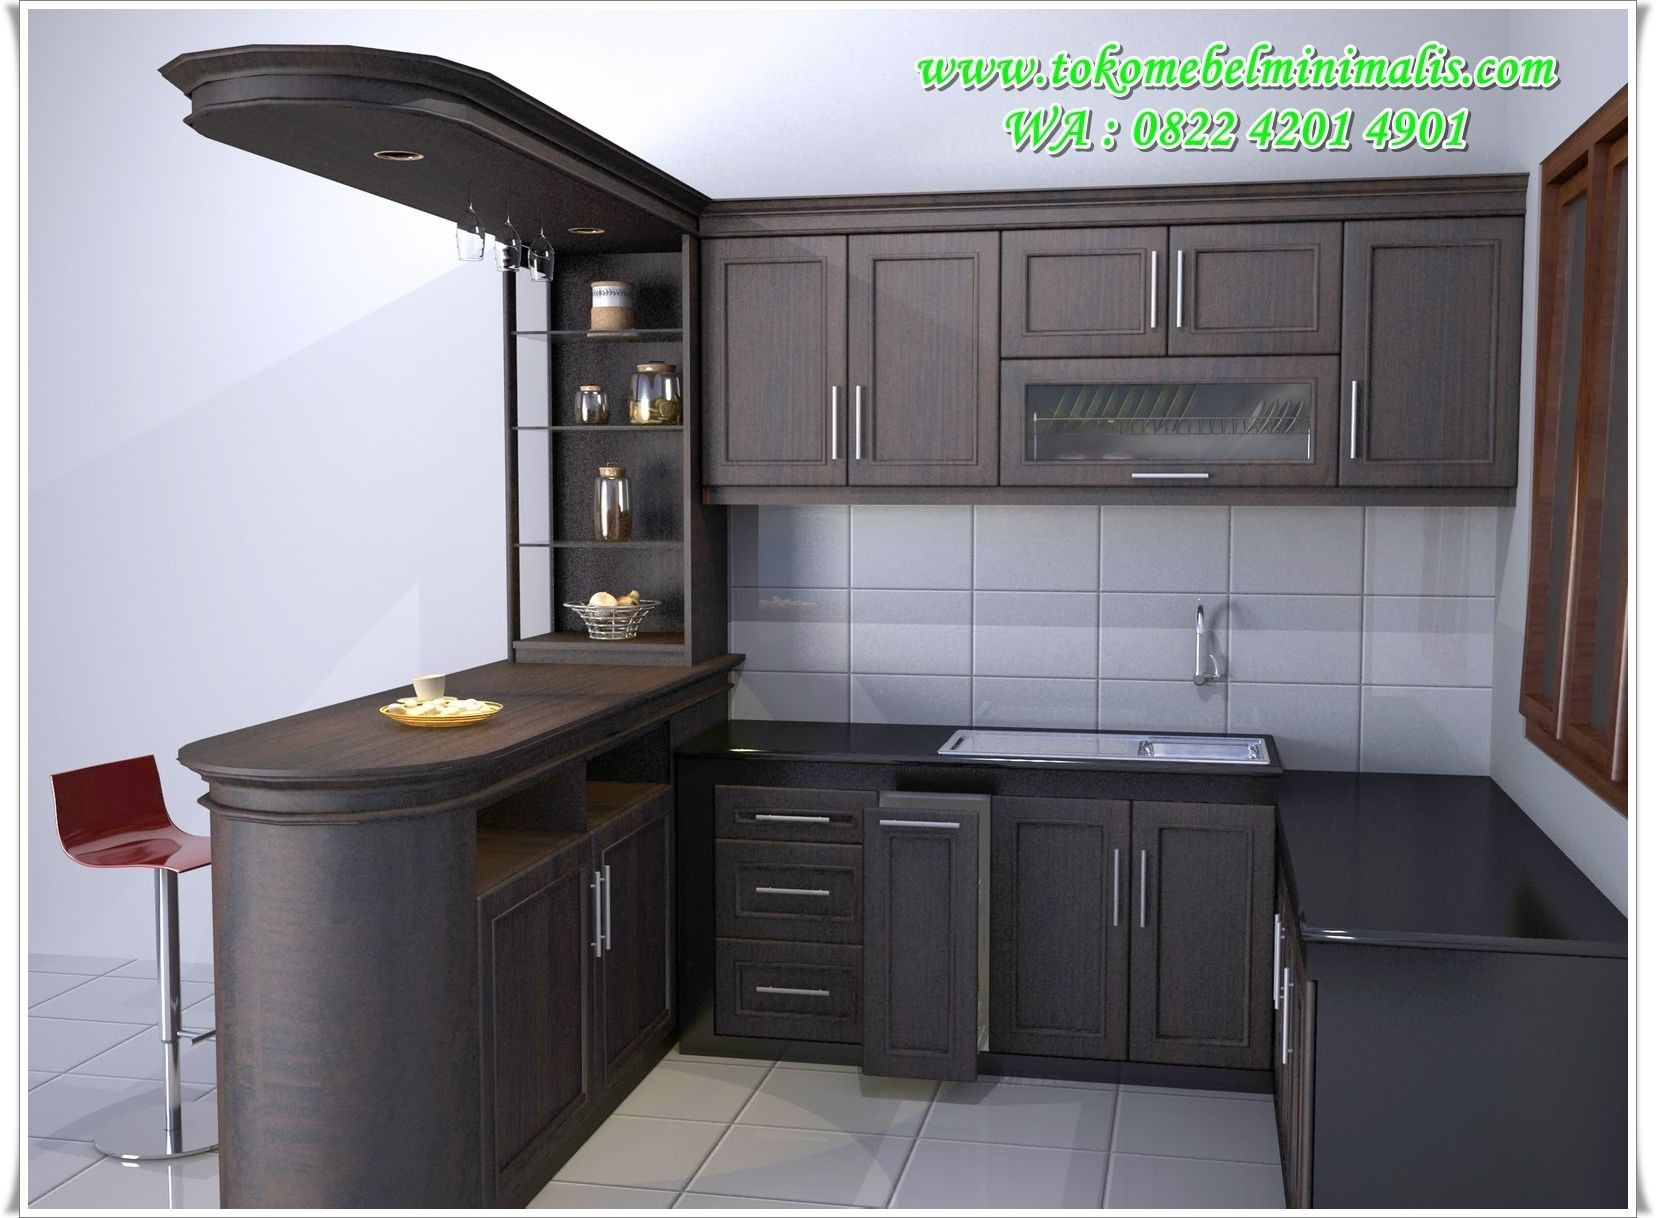 Desain Kitchen Set Kitchen Set Murah Kitchen Set Minimalis Modern Kitchen Set Minimalis Jati daftar harga kitchen set minimalis murah harga kitchen set